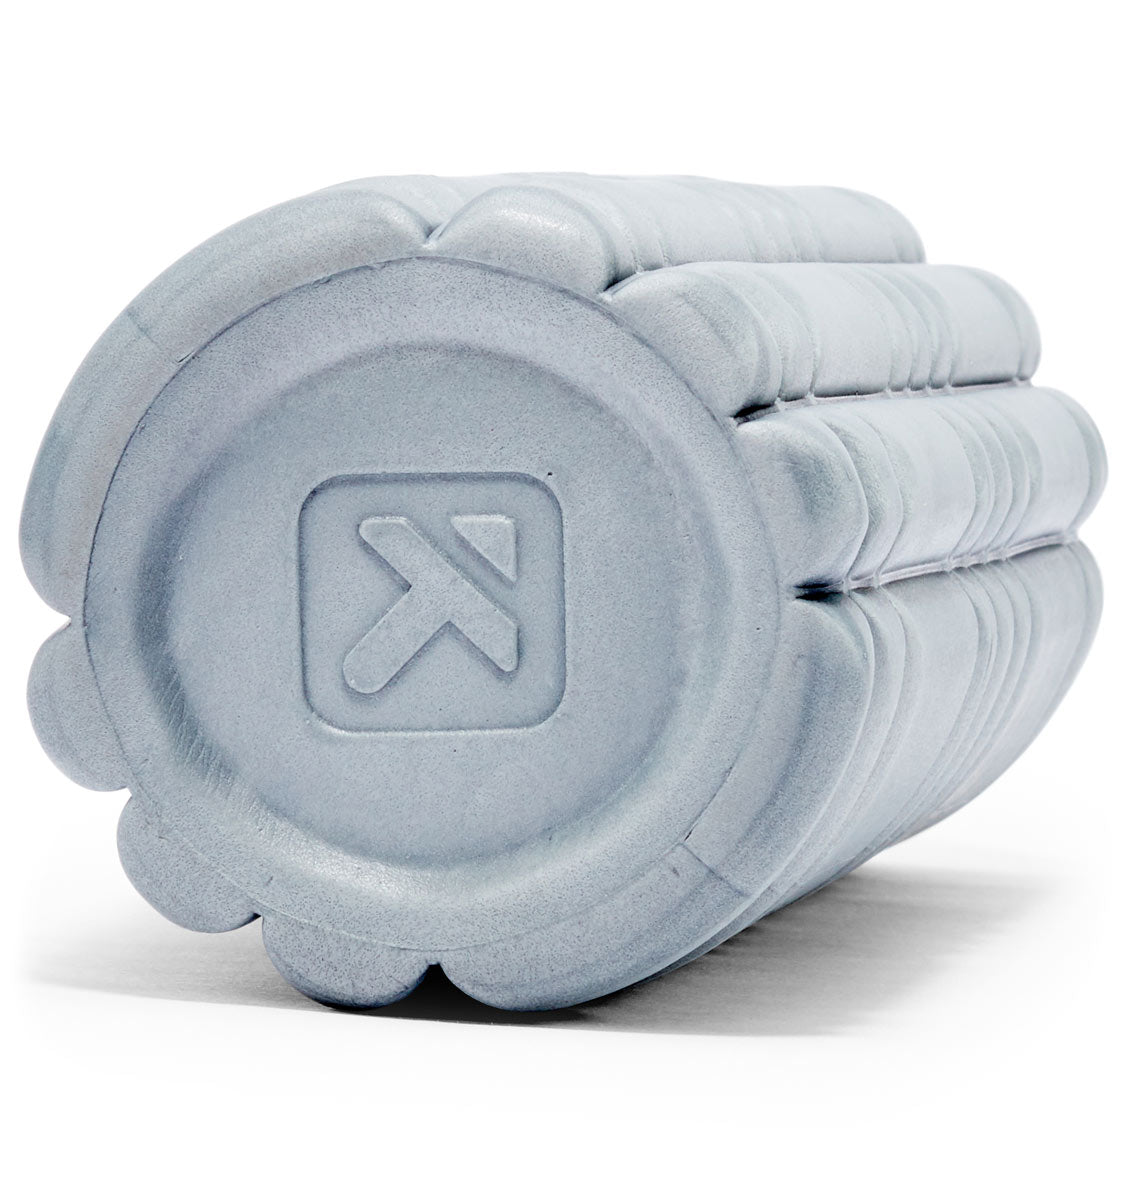 TPT303328000000 TriggerPoint Core Mini Foam Roller Grey - 60 Degree Angle - Close Up